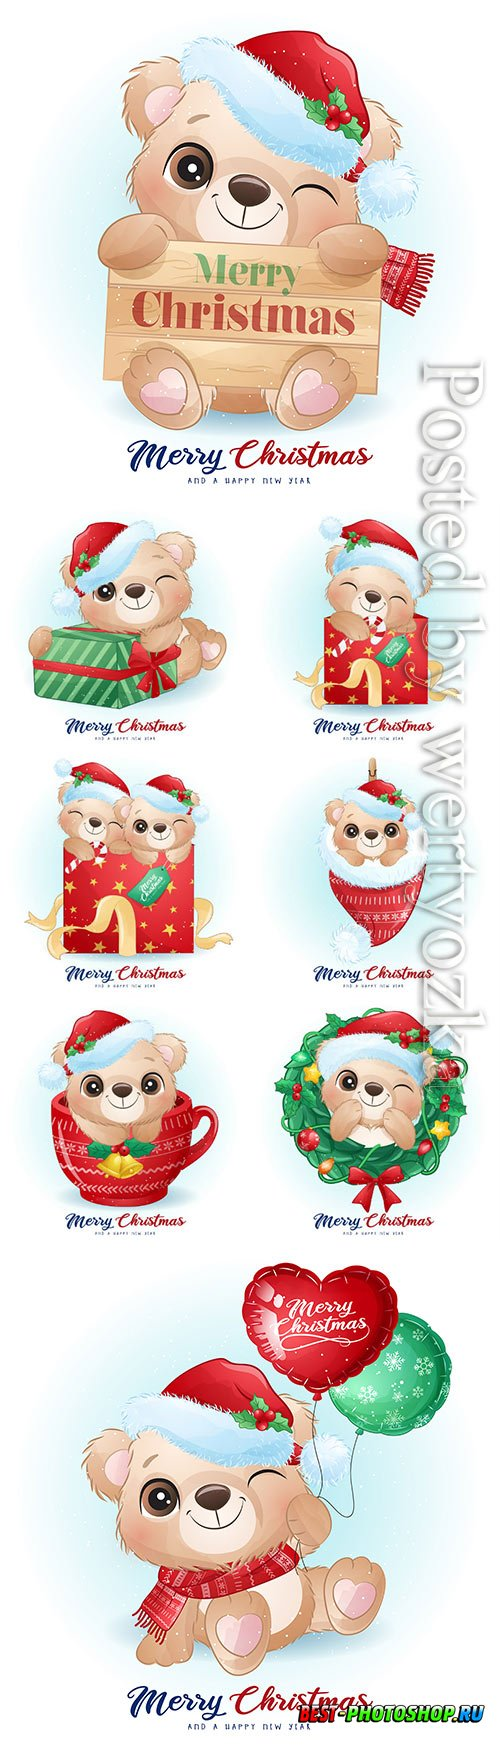 Cute doodle bear for christmas day with watercolor vector illustration